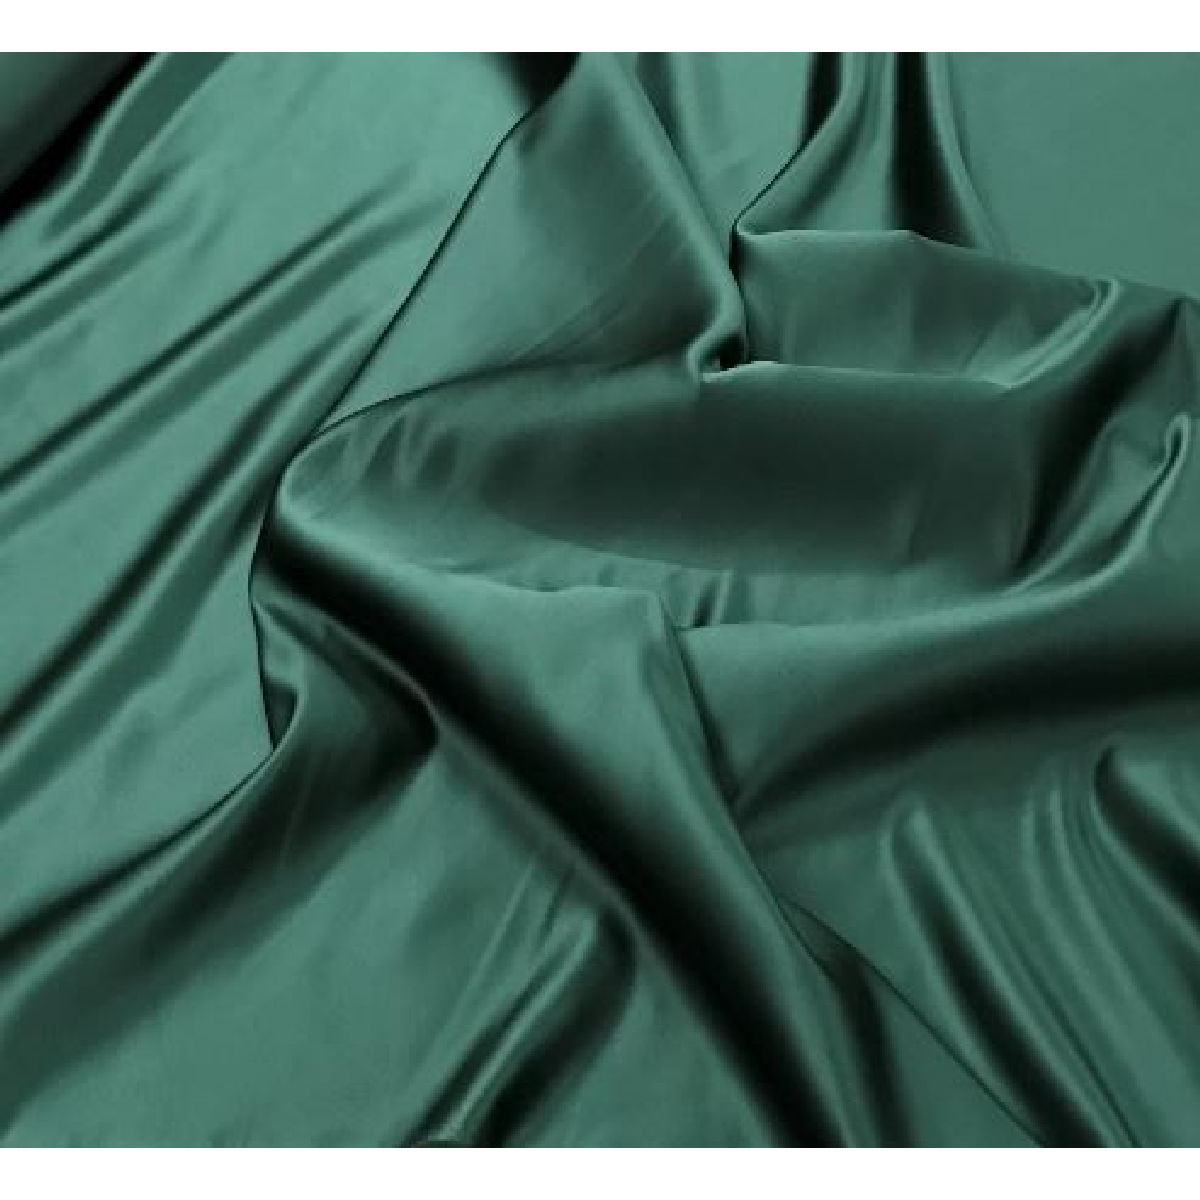 Bottle Green Luxury Silky Satin Dress Craft Fabric Wedding Material 150cm Wide